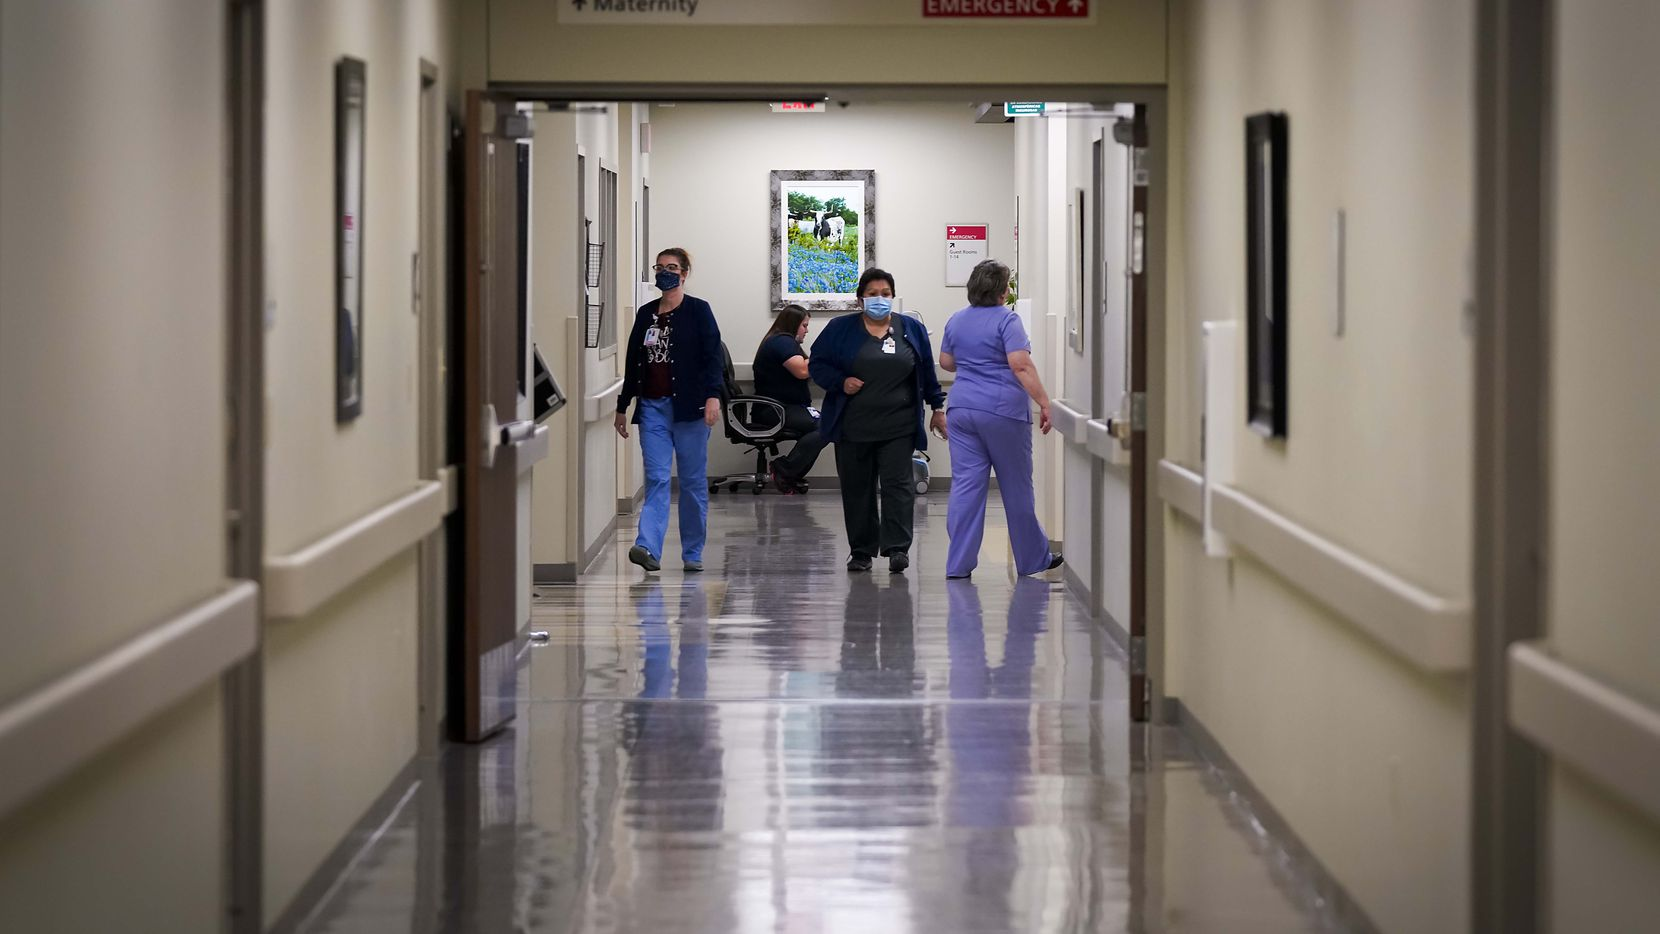 Staff at Faith Community Hospital move between rooms at the hospital on Thursday, May 14, 2020, in Jacksboro, Texas. (Smiley N. Pool/The Dallas Morning News)